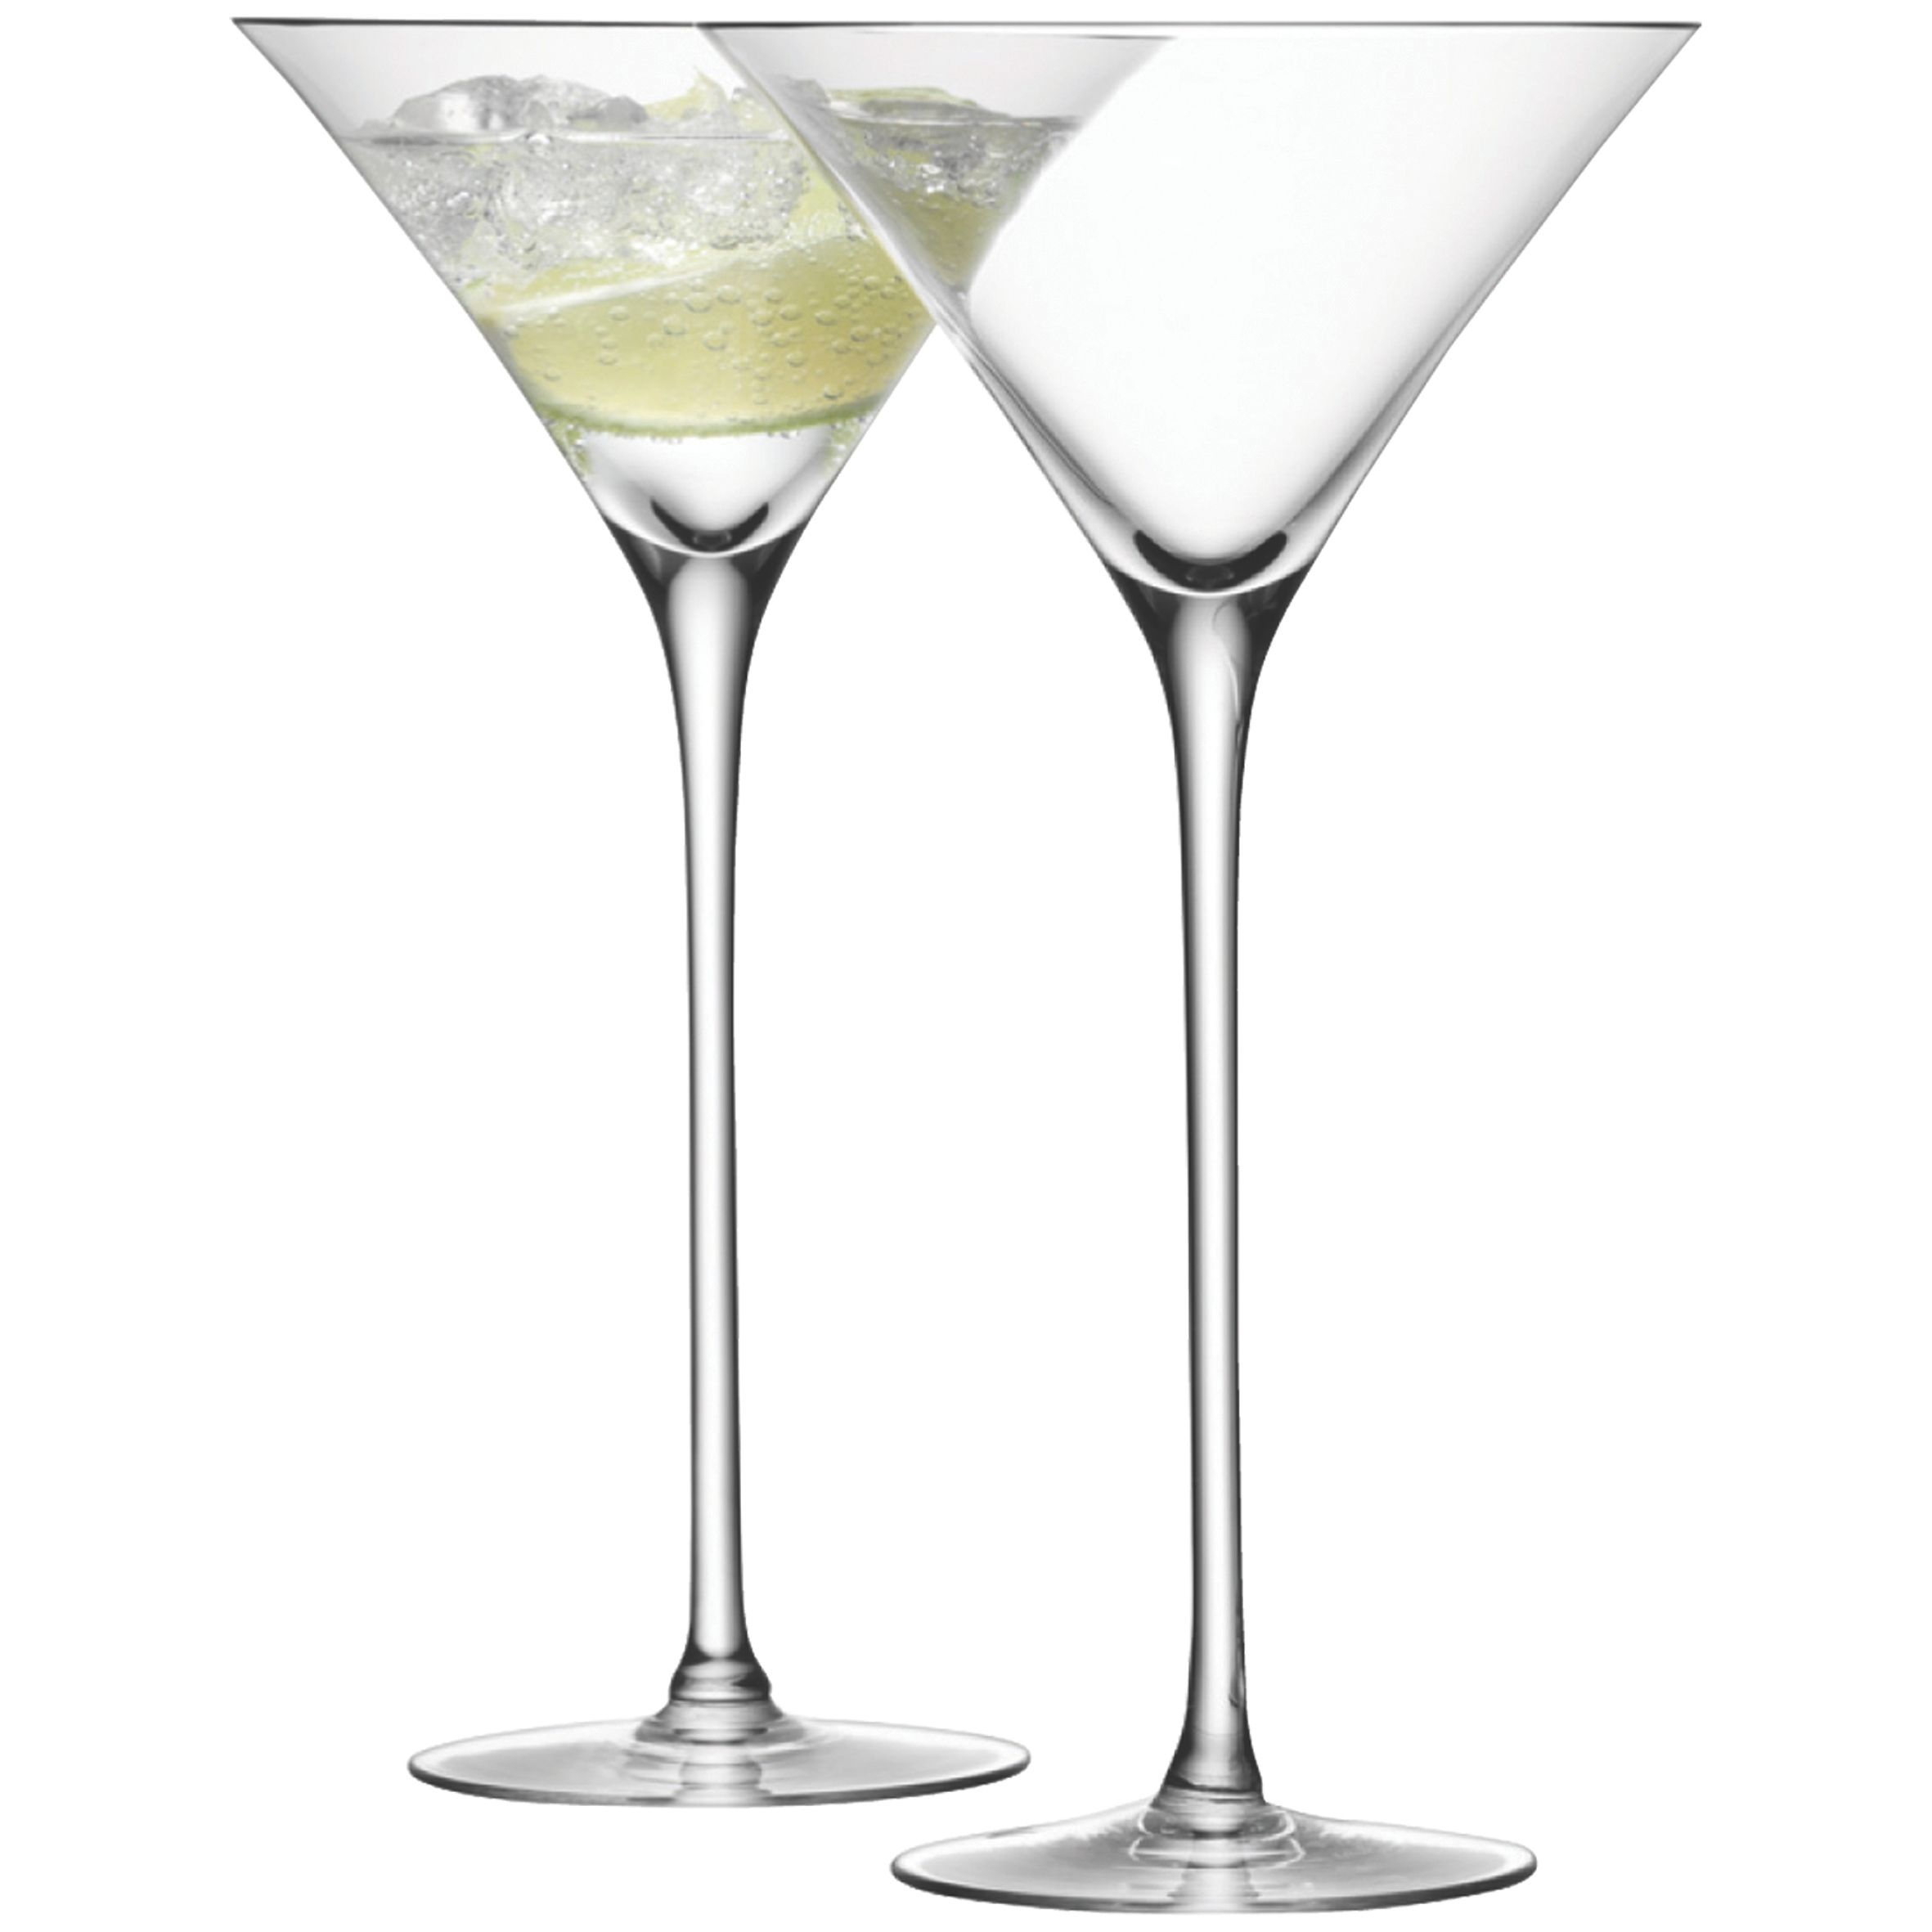 Image of LSA Bar collection cocktail glasses, set of 2